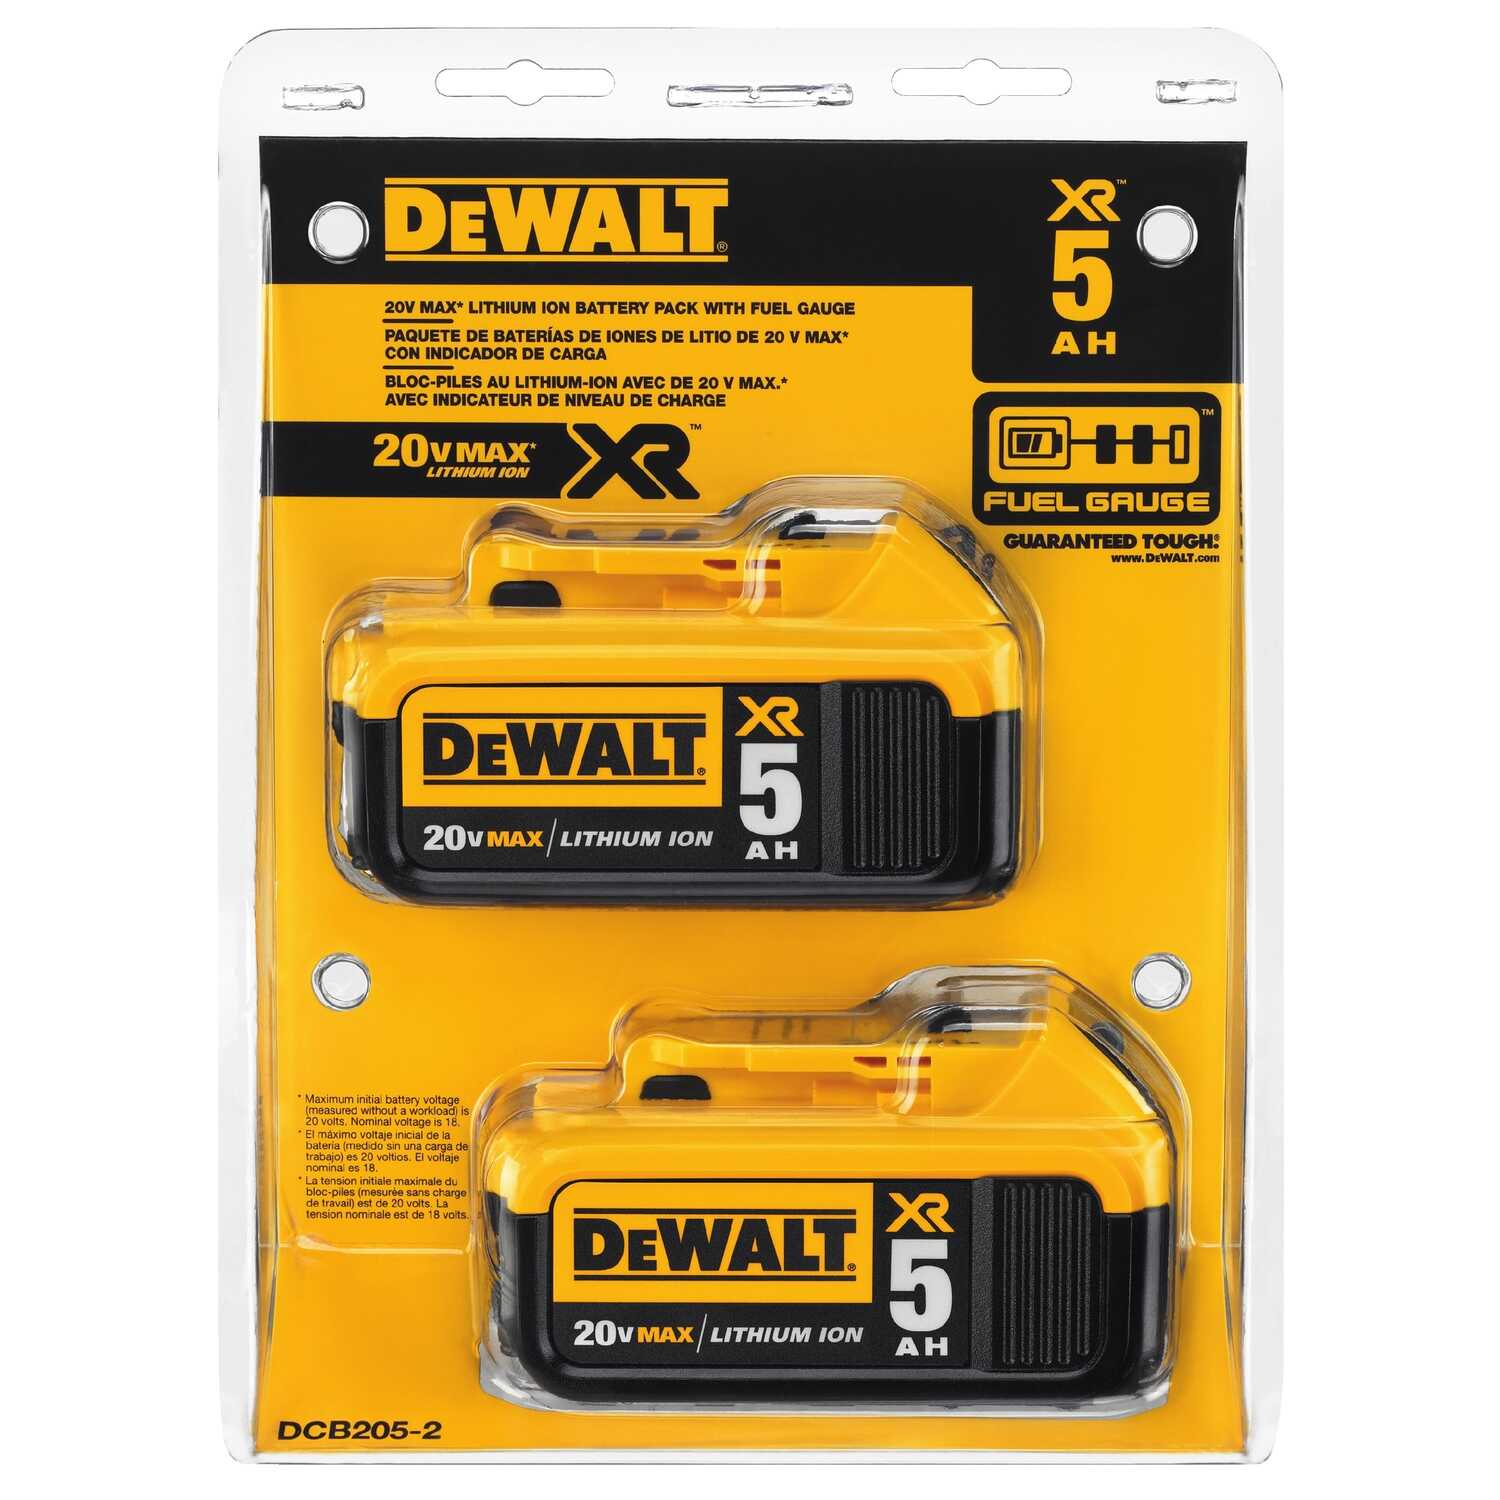 DeWalt  20V MAX XR  20 volt 5 amps Lithium-Ion  Battery Combo Pack  2 pc.